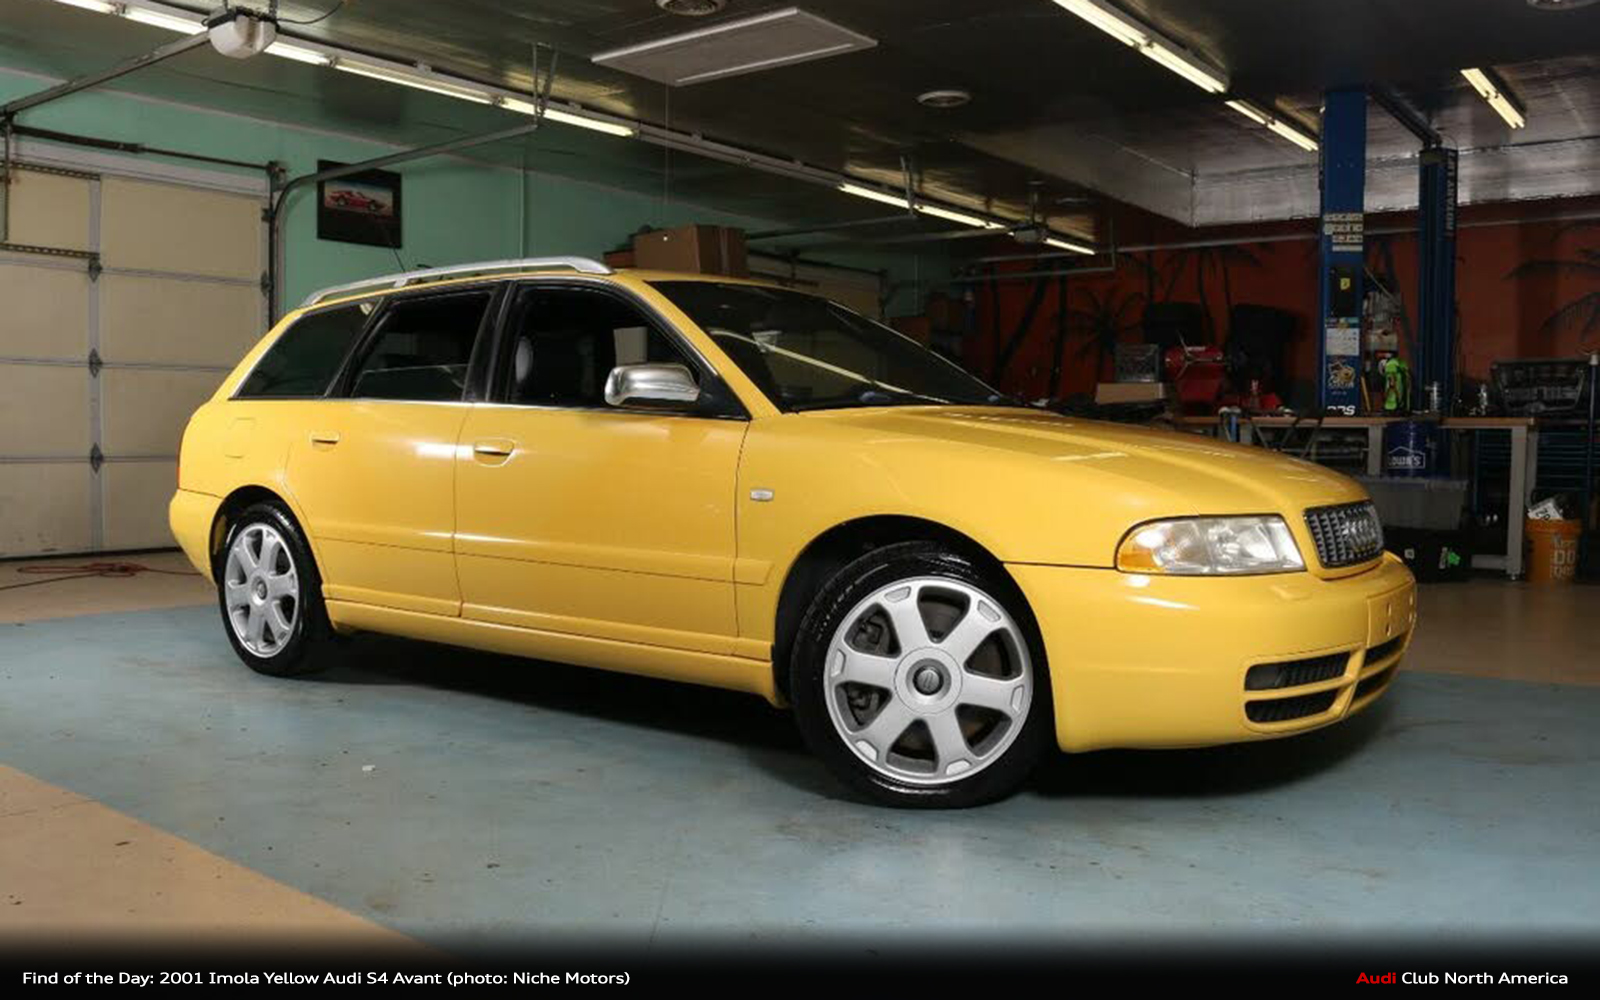 Find of the Day: 2001 Imola Yellow Audi S4 Avant